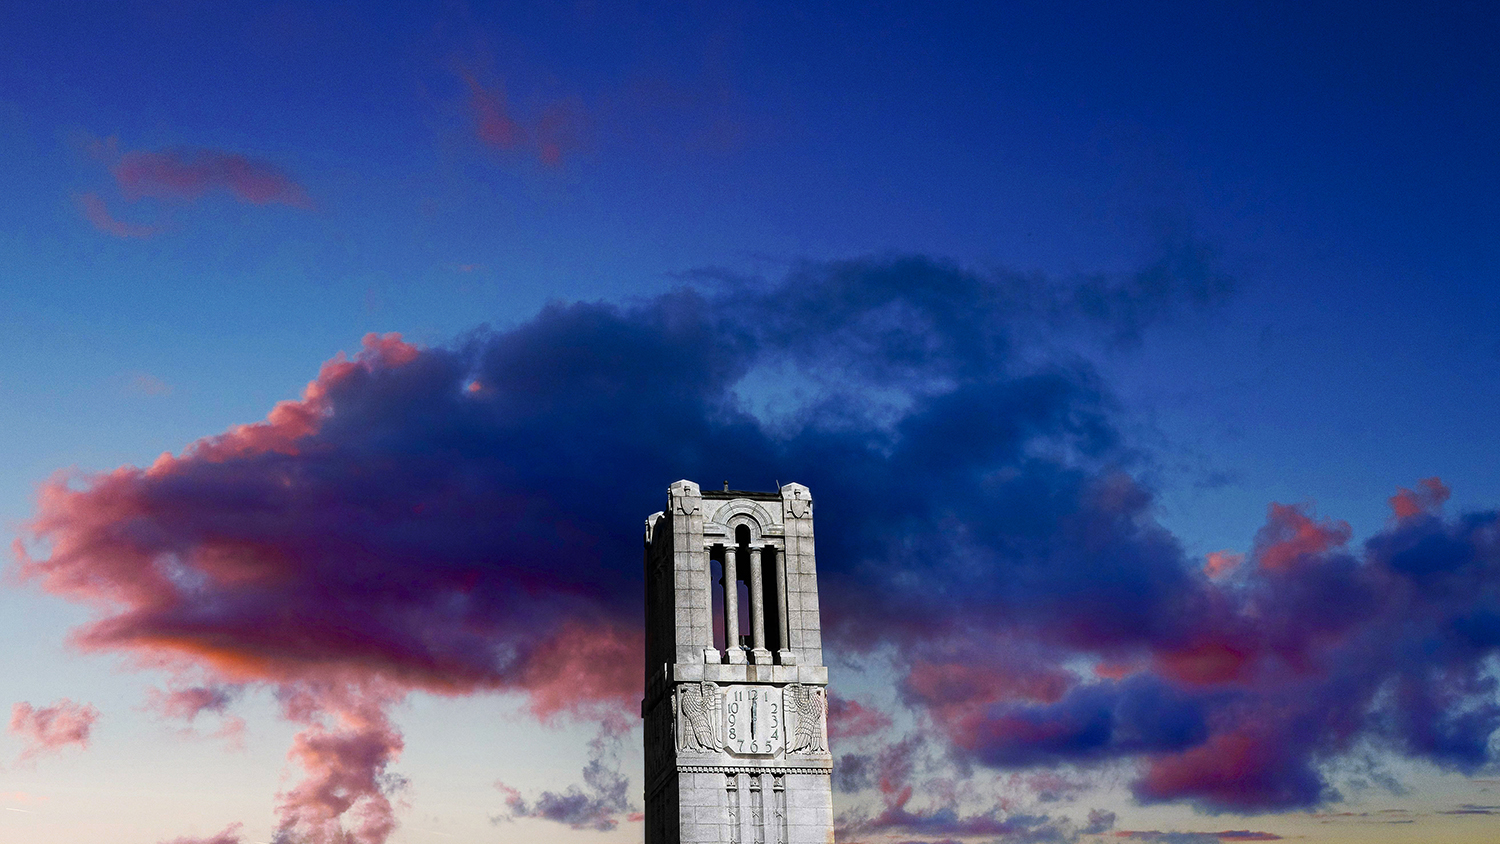 The Belltower against colorful clouds at sunset.